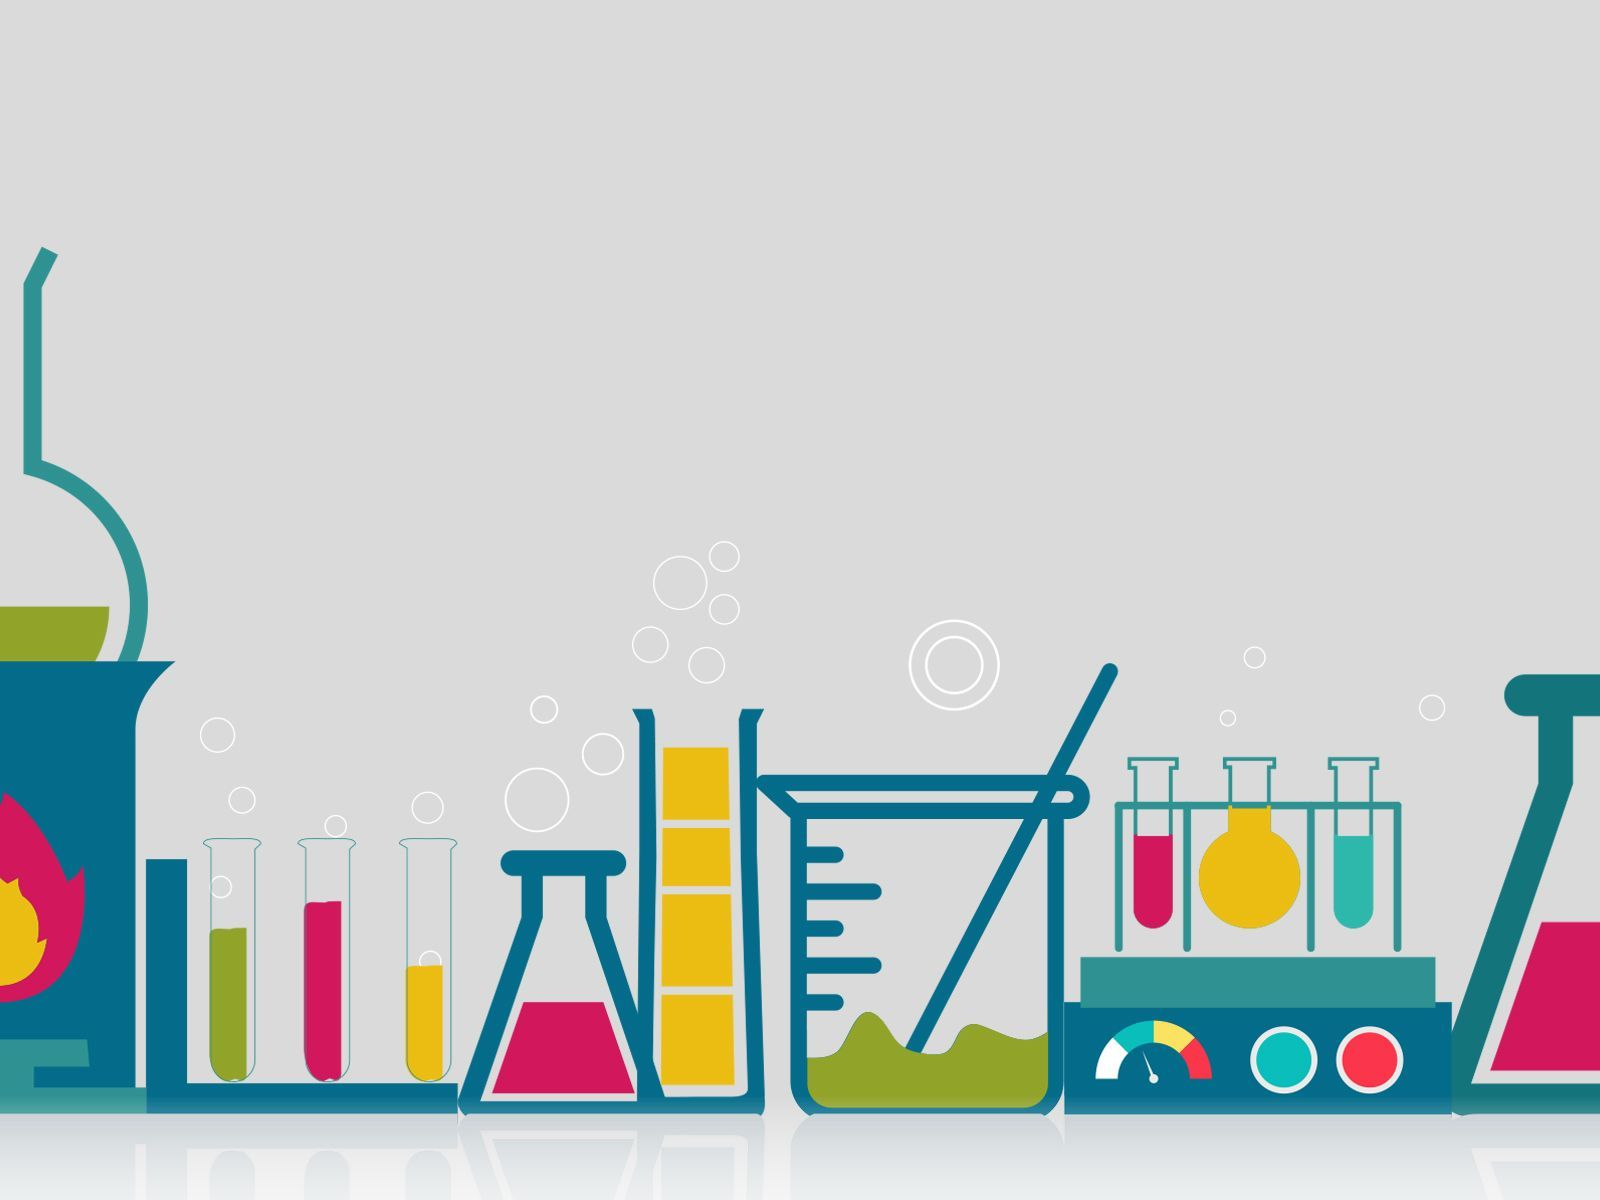 This Chemistry Powerpoint Background Is A Simple Design About Science That  You Can Download And Use In … | Chemistry Lessons, Science Powerpoint,  Science Background